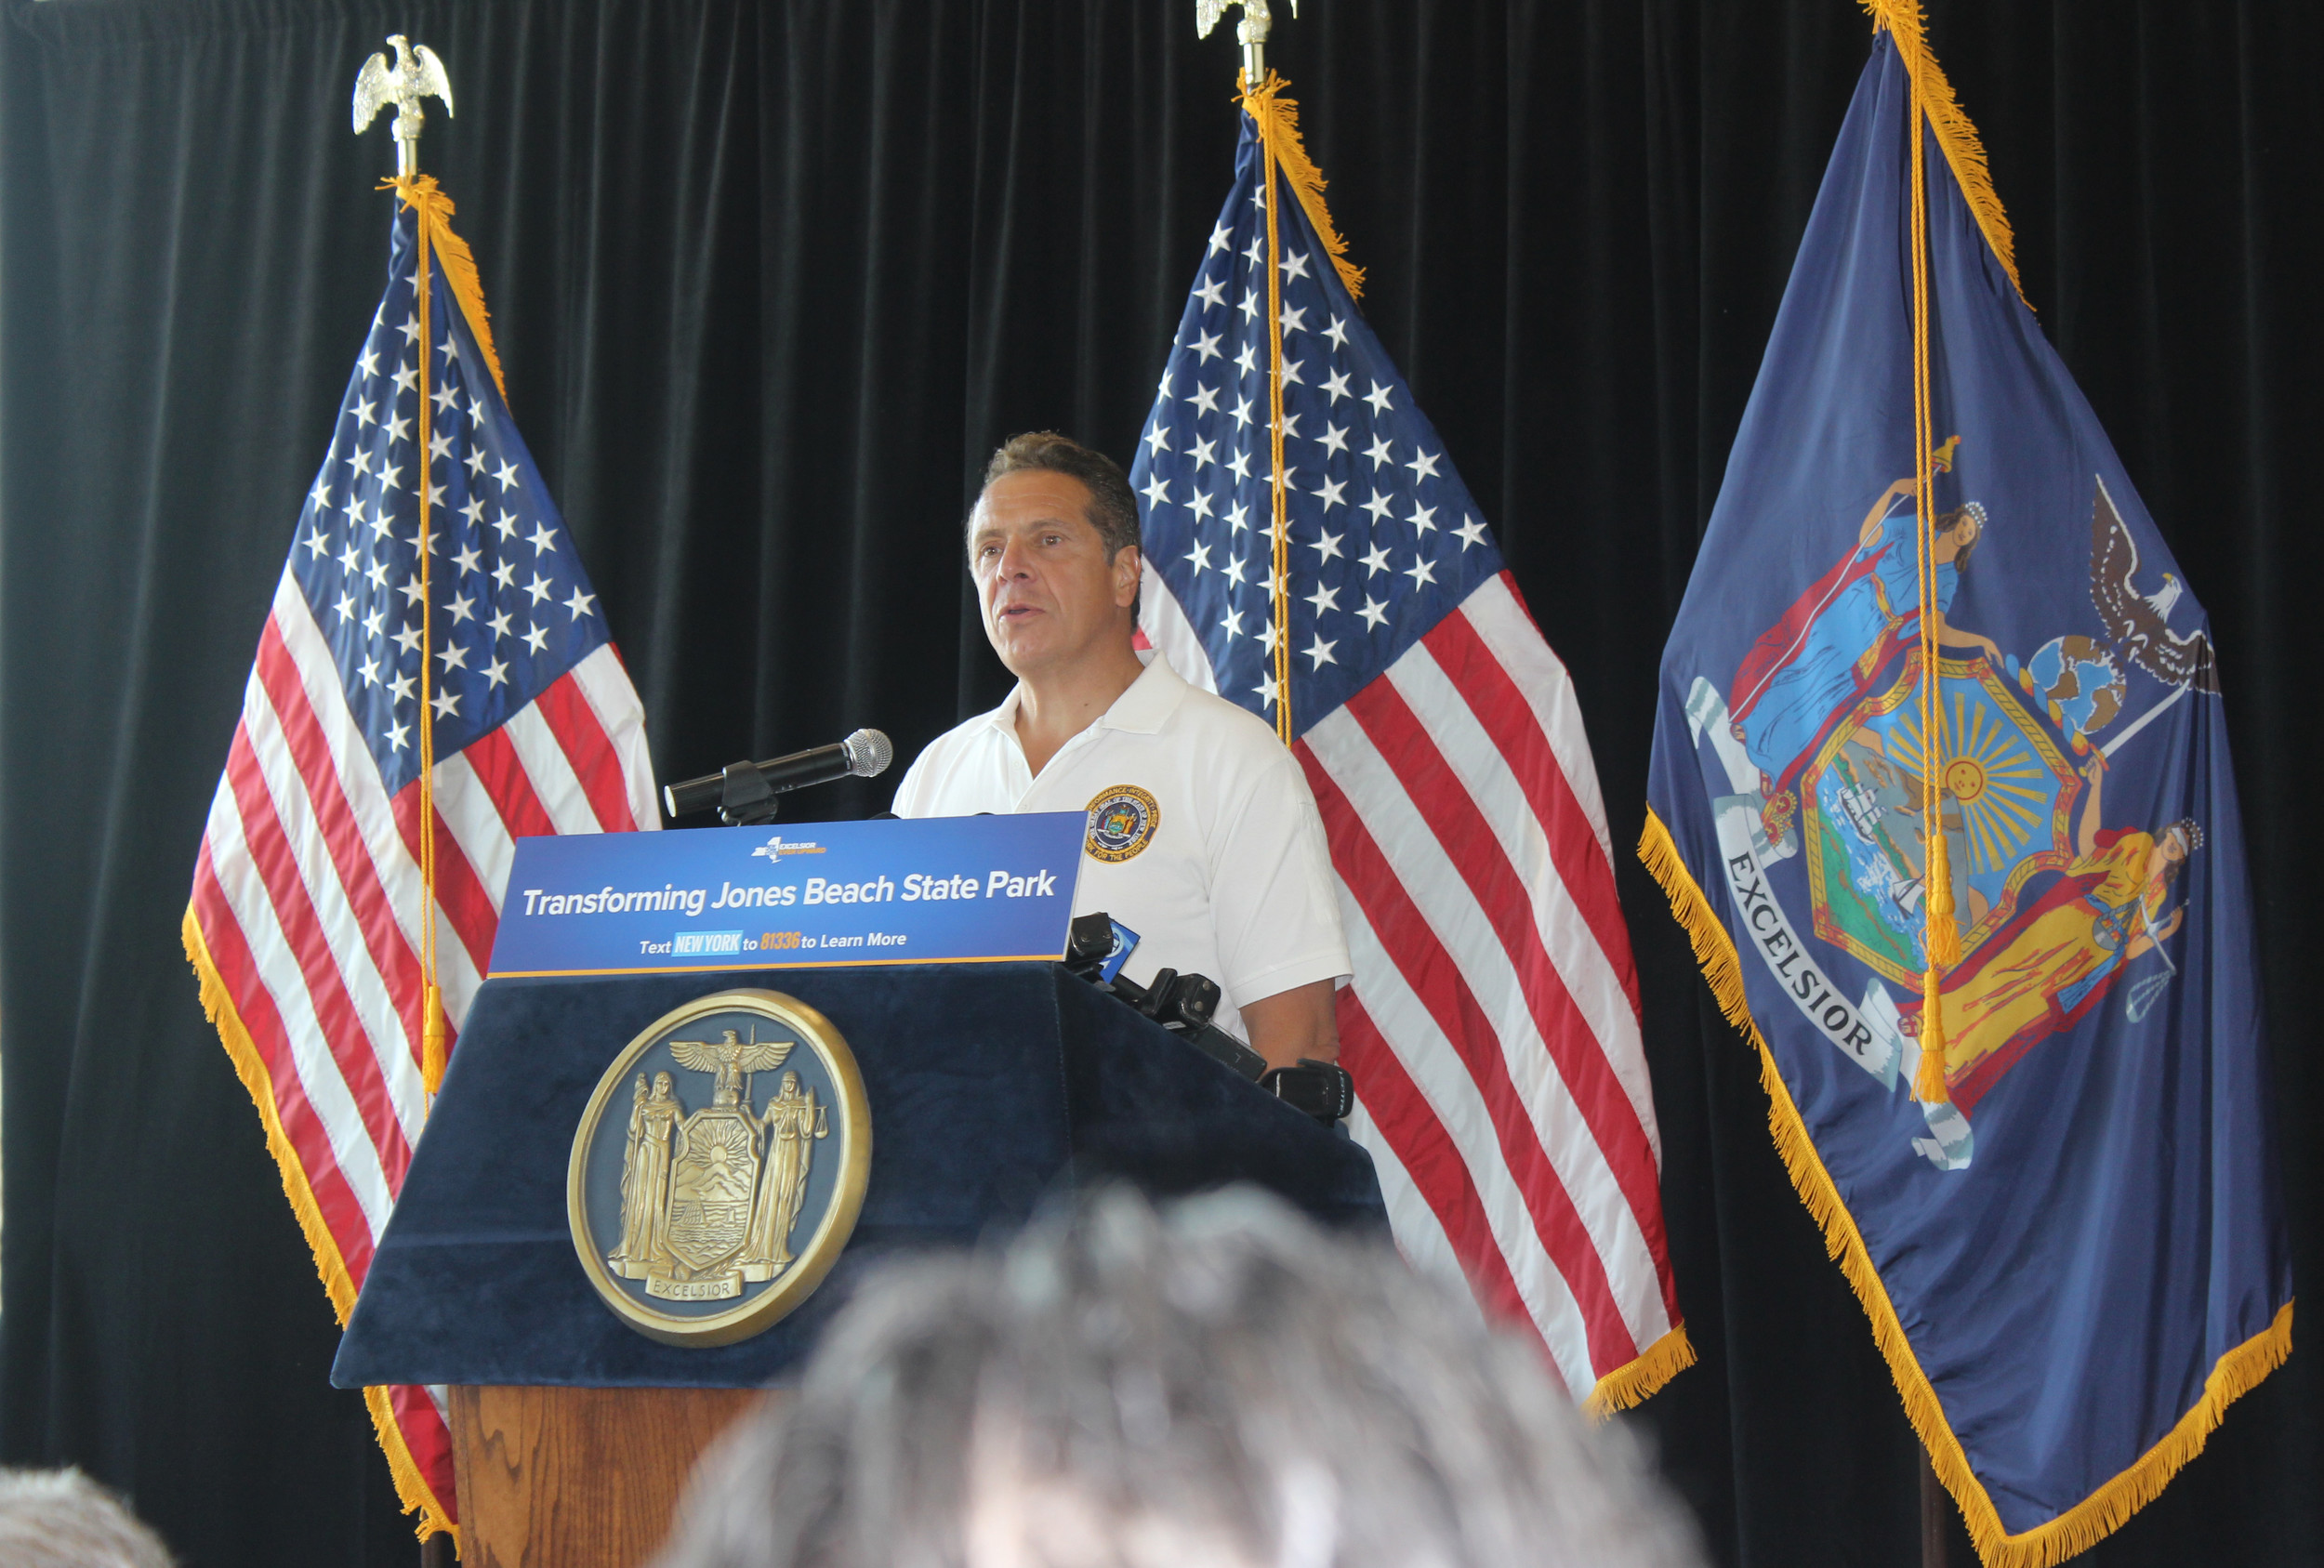 Gov. Andrew Cuomo announced August 2 the next steps in the state's Jones Beach restoration project, which include building a water park and zip line.